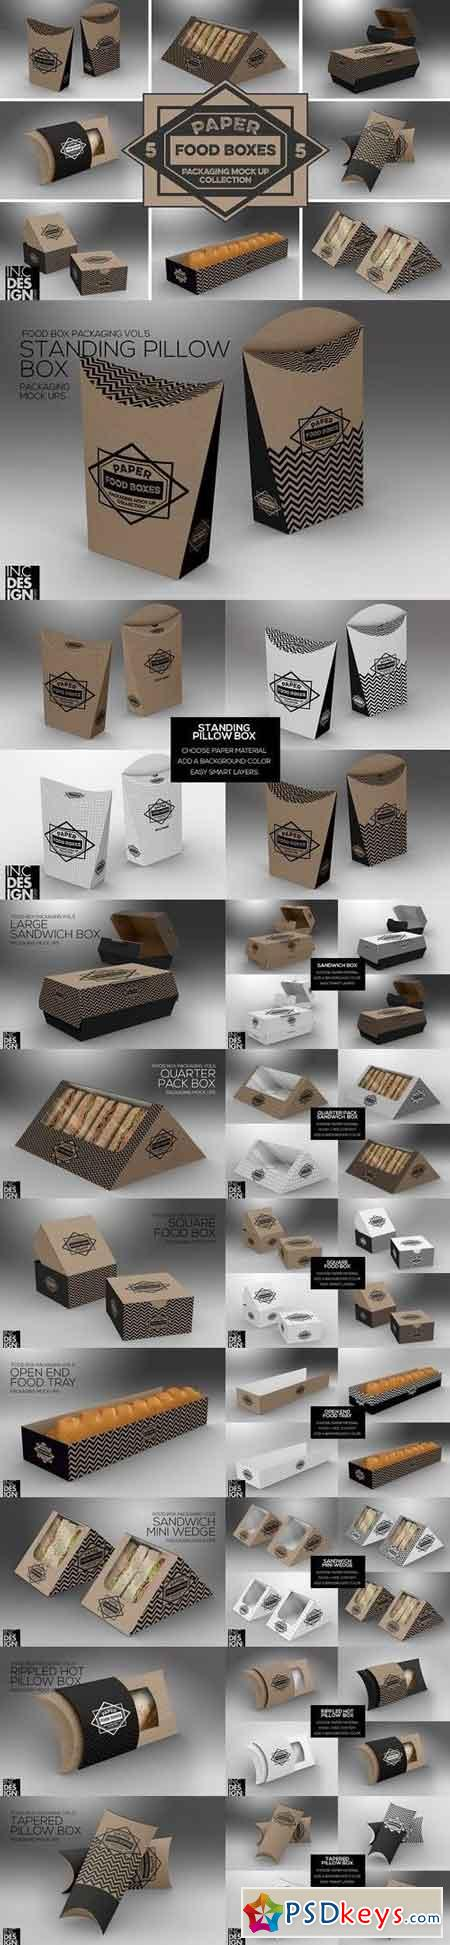 VOL.5 Food Box Packaging Mock Ups 1286576